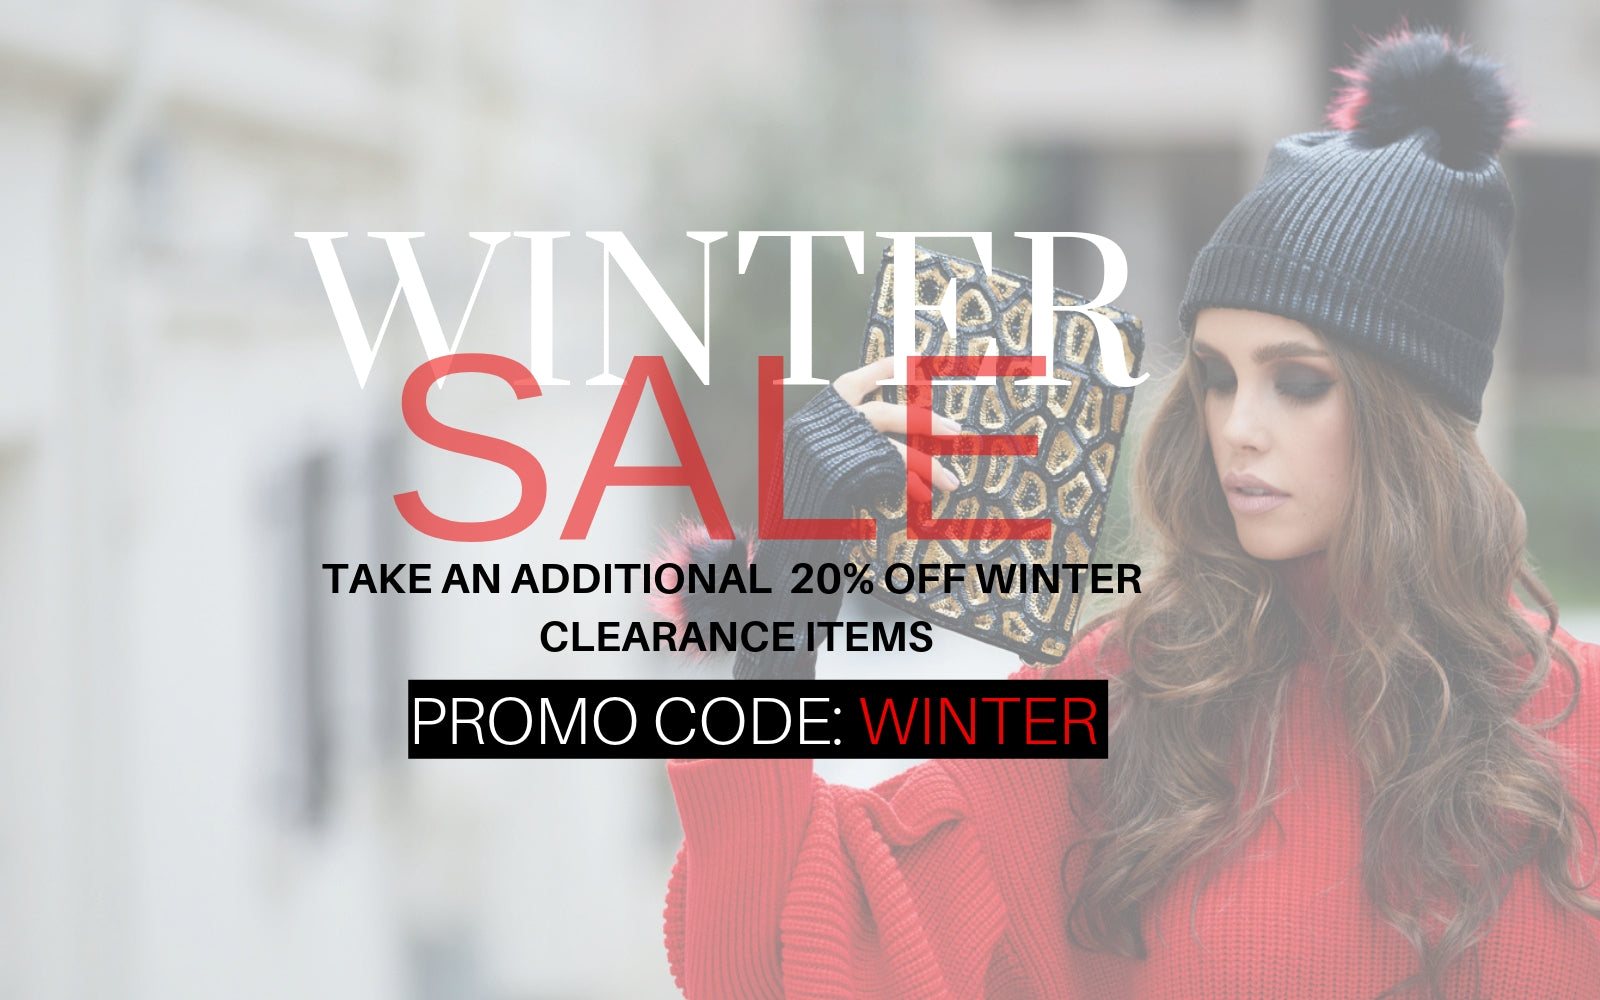 d8e4c80ea Winter Clearance Sale | Additional 20% Off | San Diego Hat Company